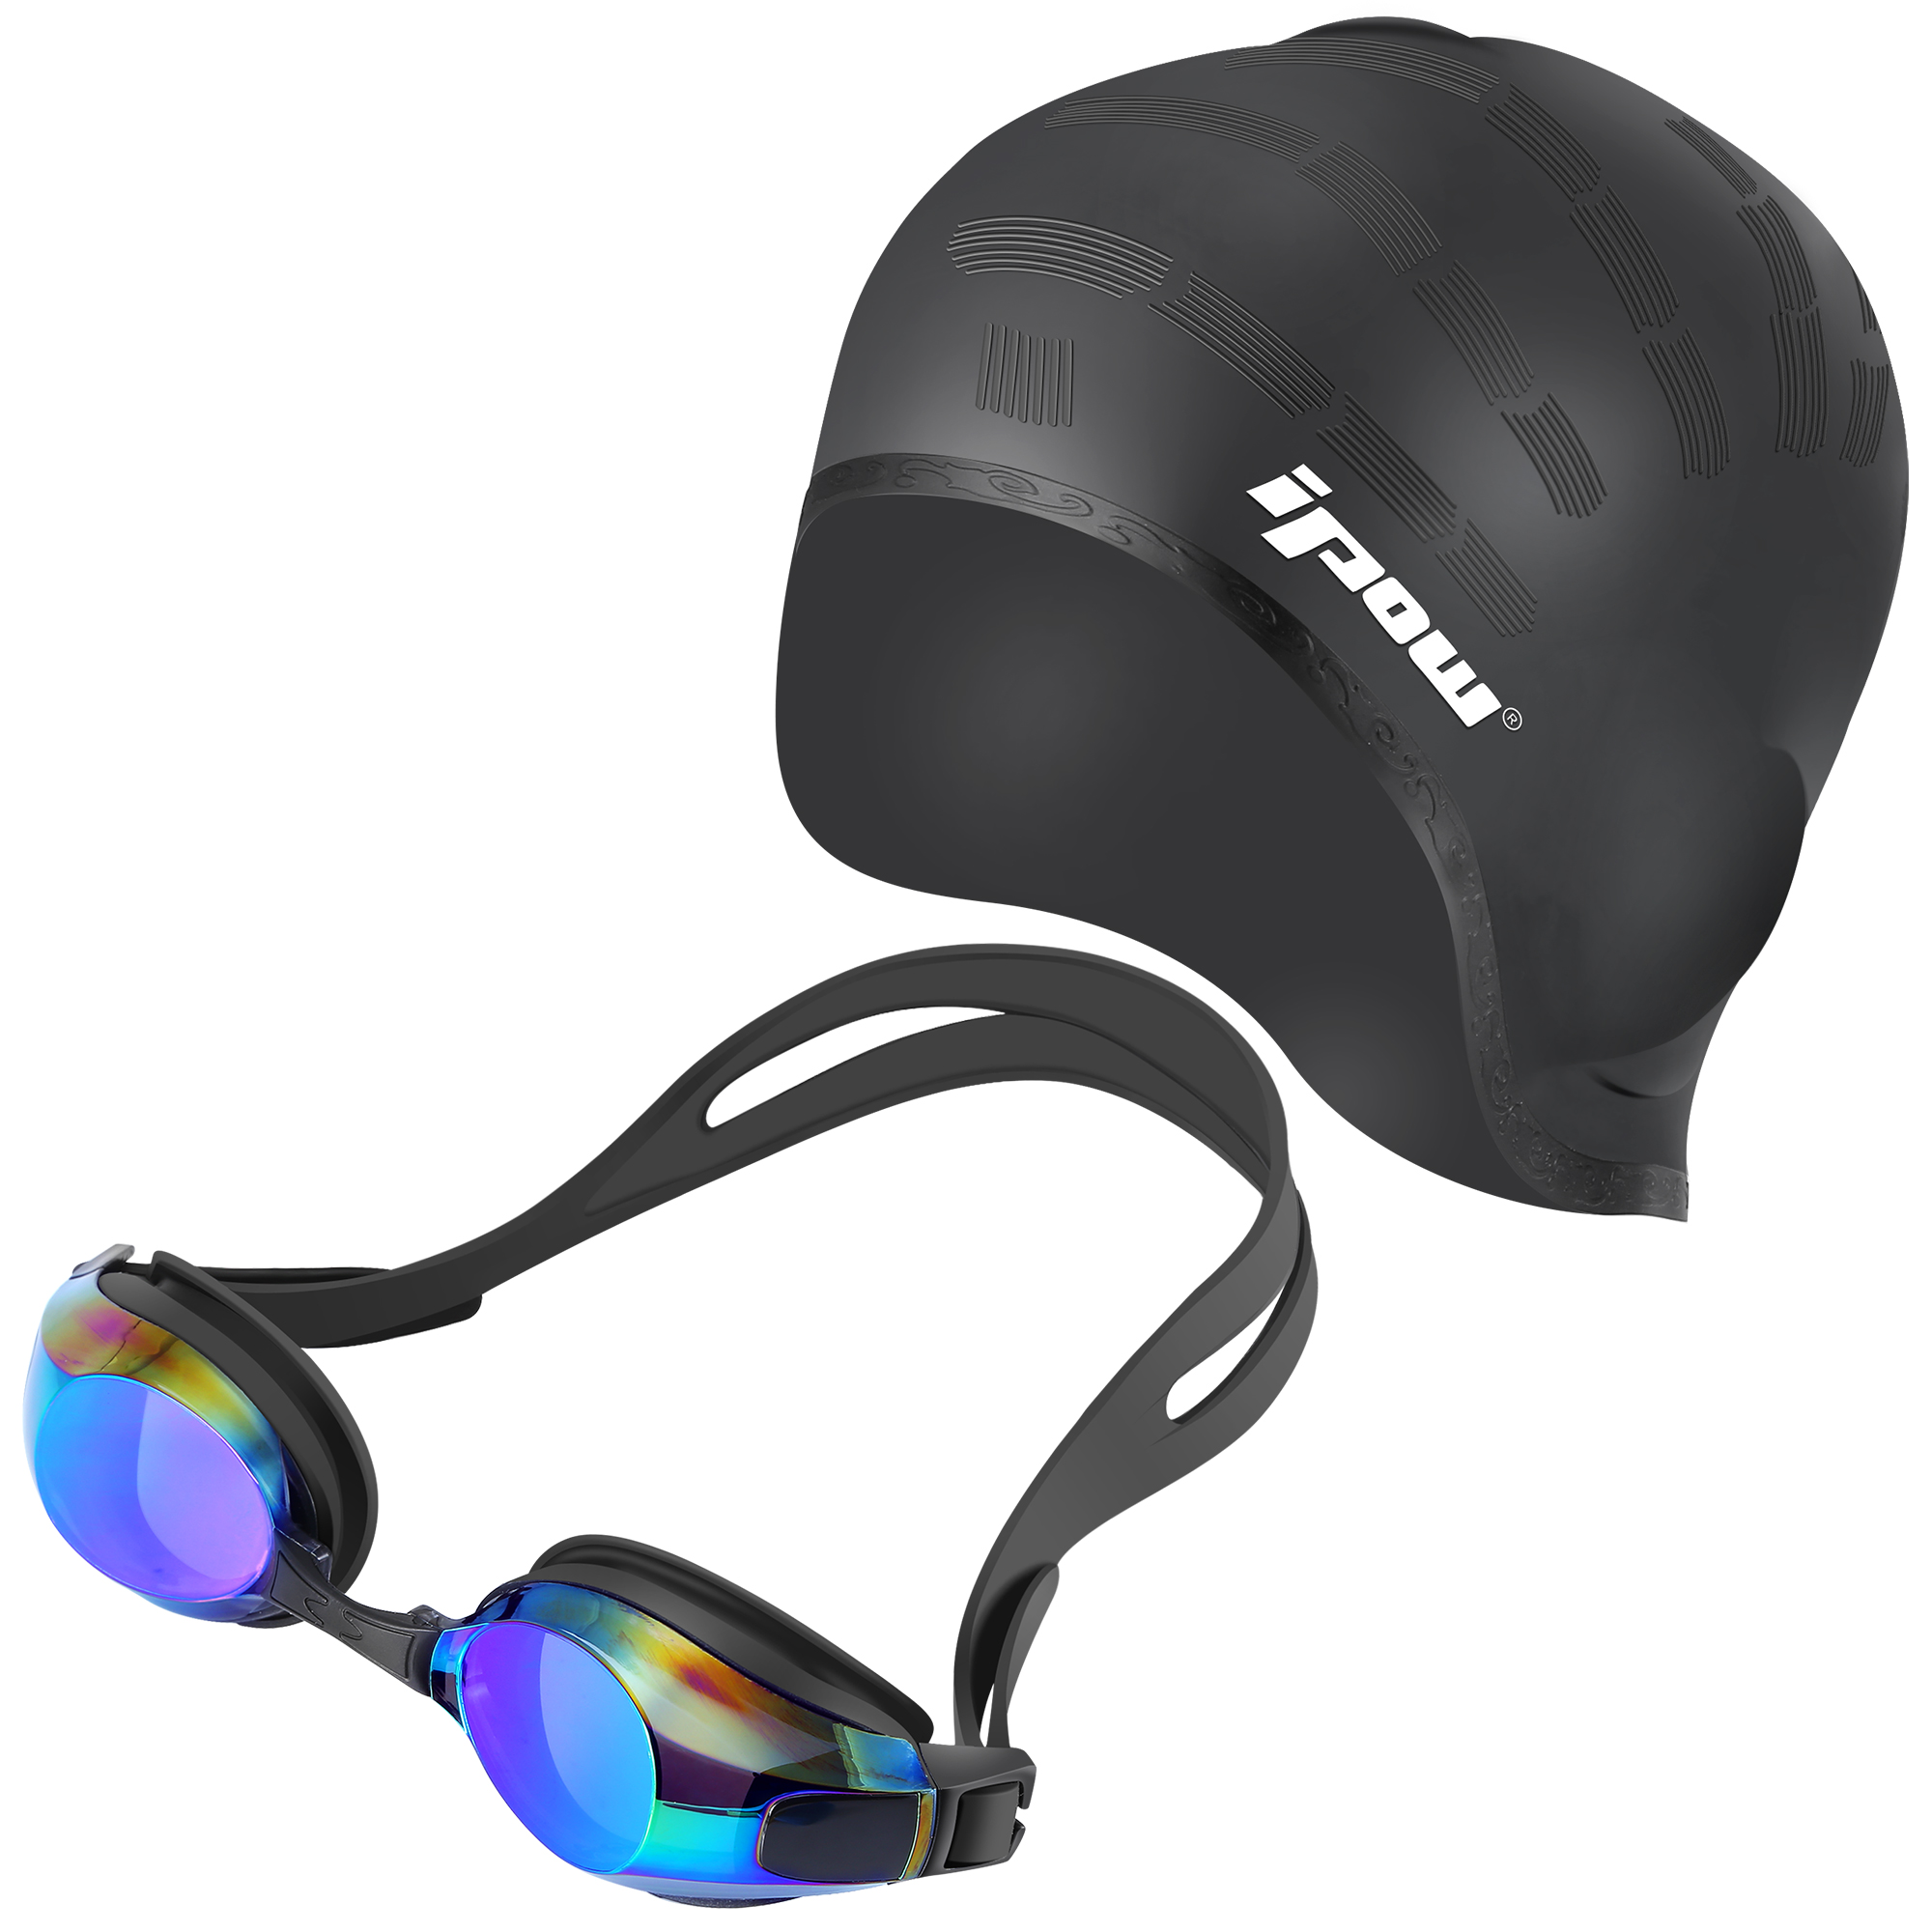 Swimming Cap + Swimming Goggles, IPOW Swim Goggle Glasses and Swimming Hat Cap Set, Silicone Swim Cap and Waterproof Anti-fog Swimming Goggle for Adults Women Long Hair Men Kids Girls Boys Youth